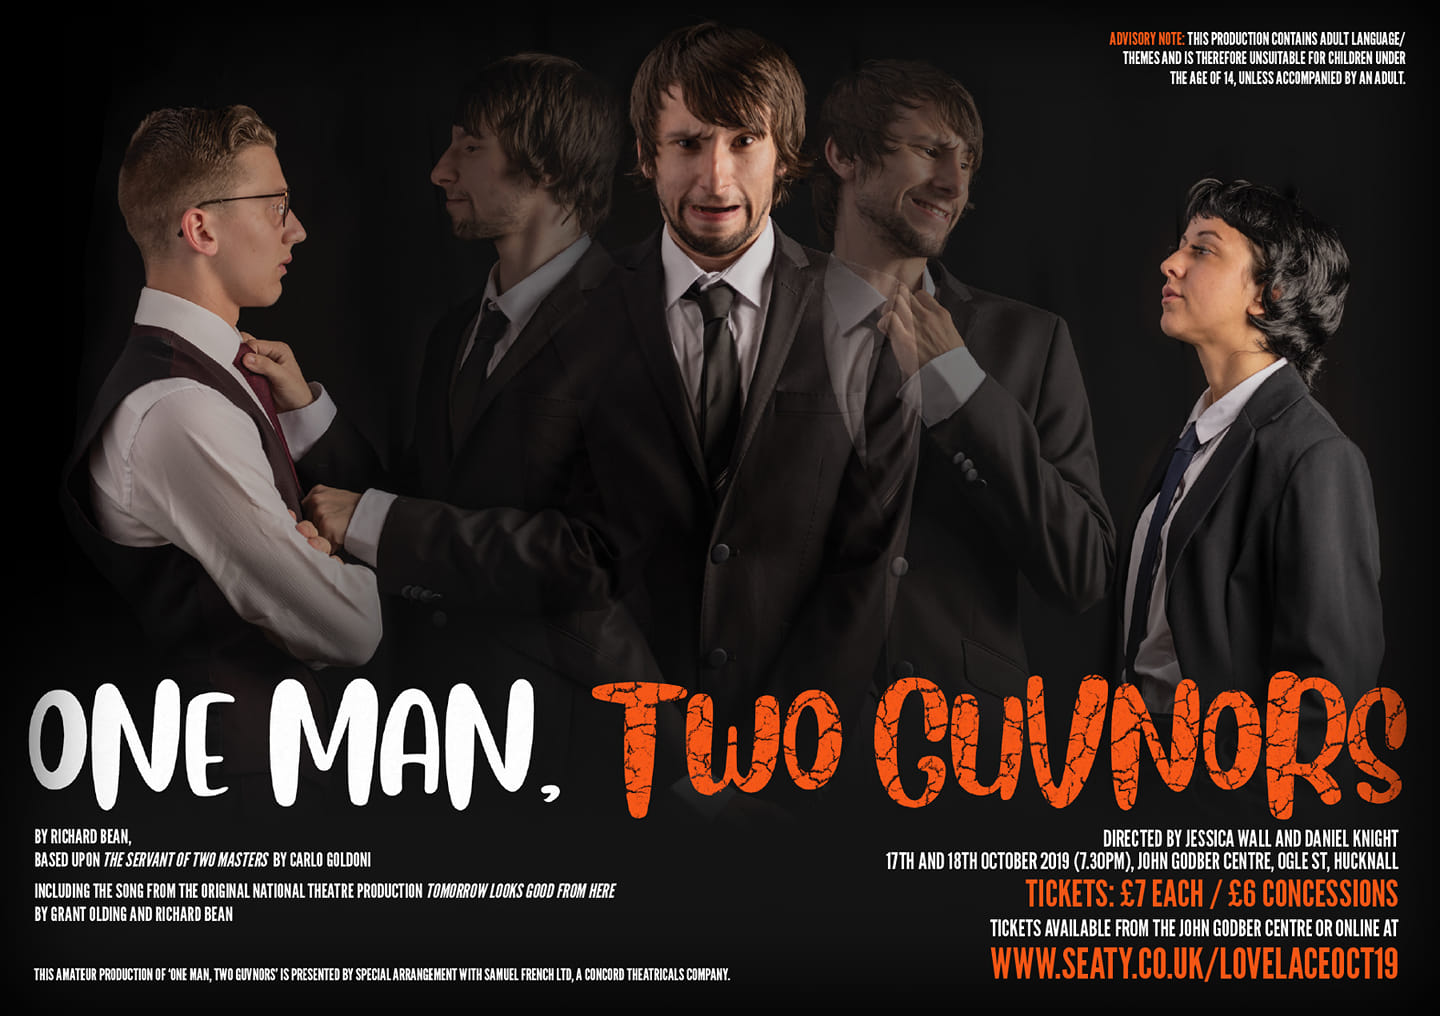 Lovelace Theatre One Man, Two Guvnors production poster